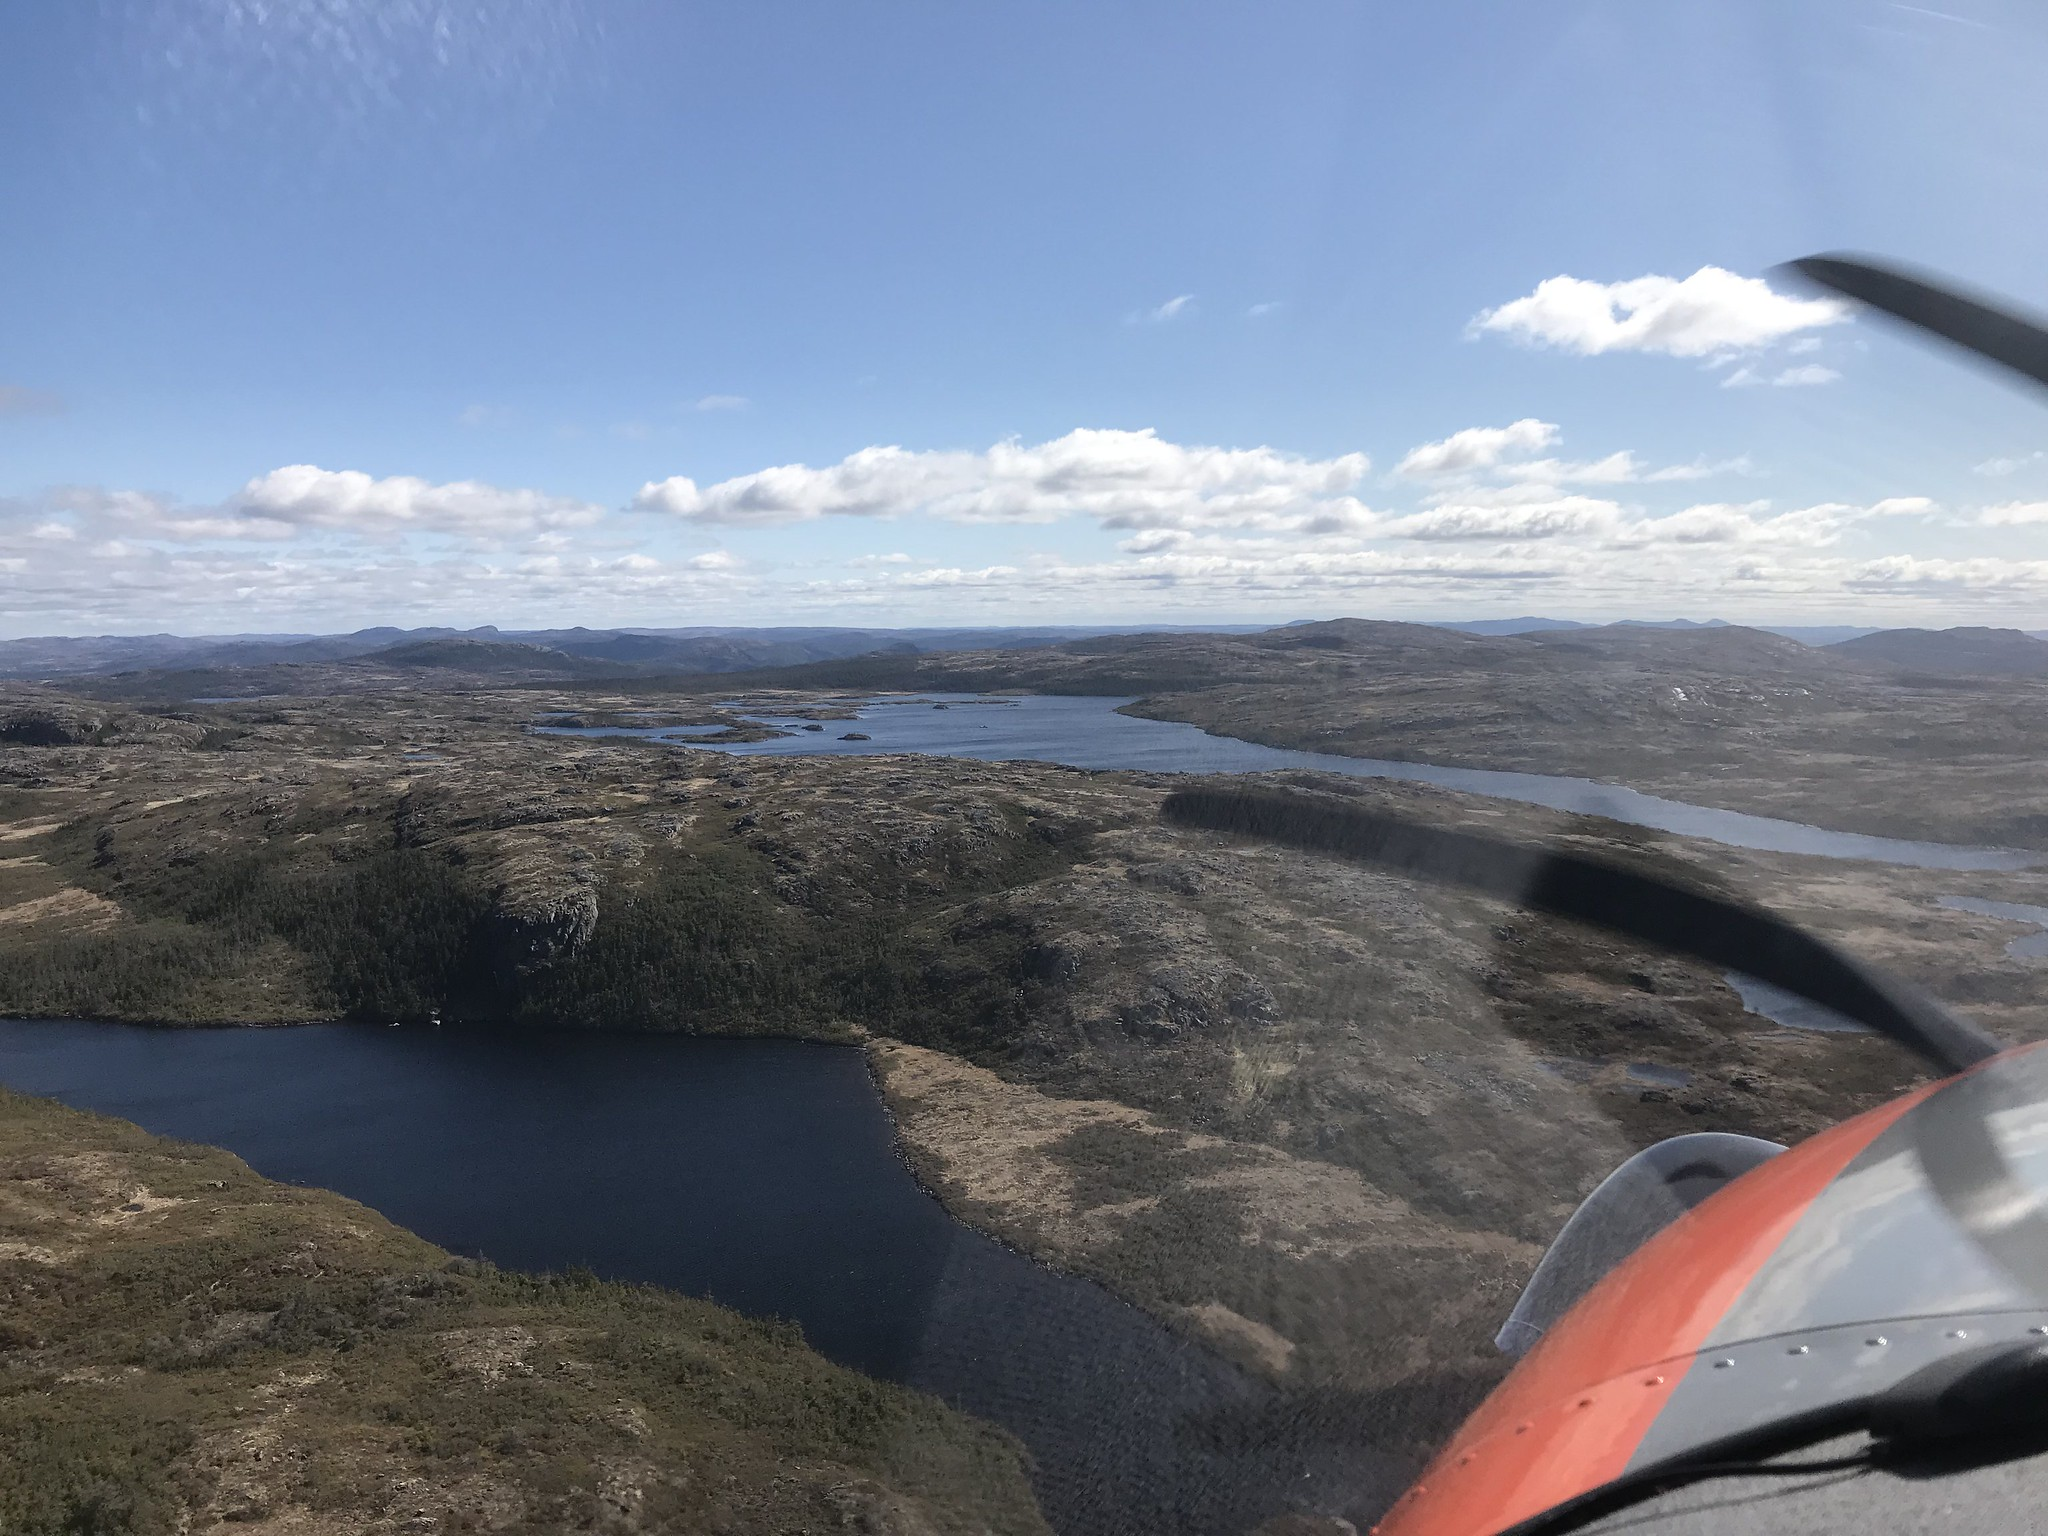 Interior Newfoundland near the south shore, May 2018 Photo Credit: USFWS